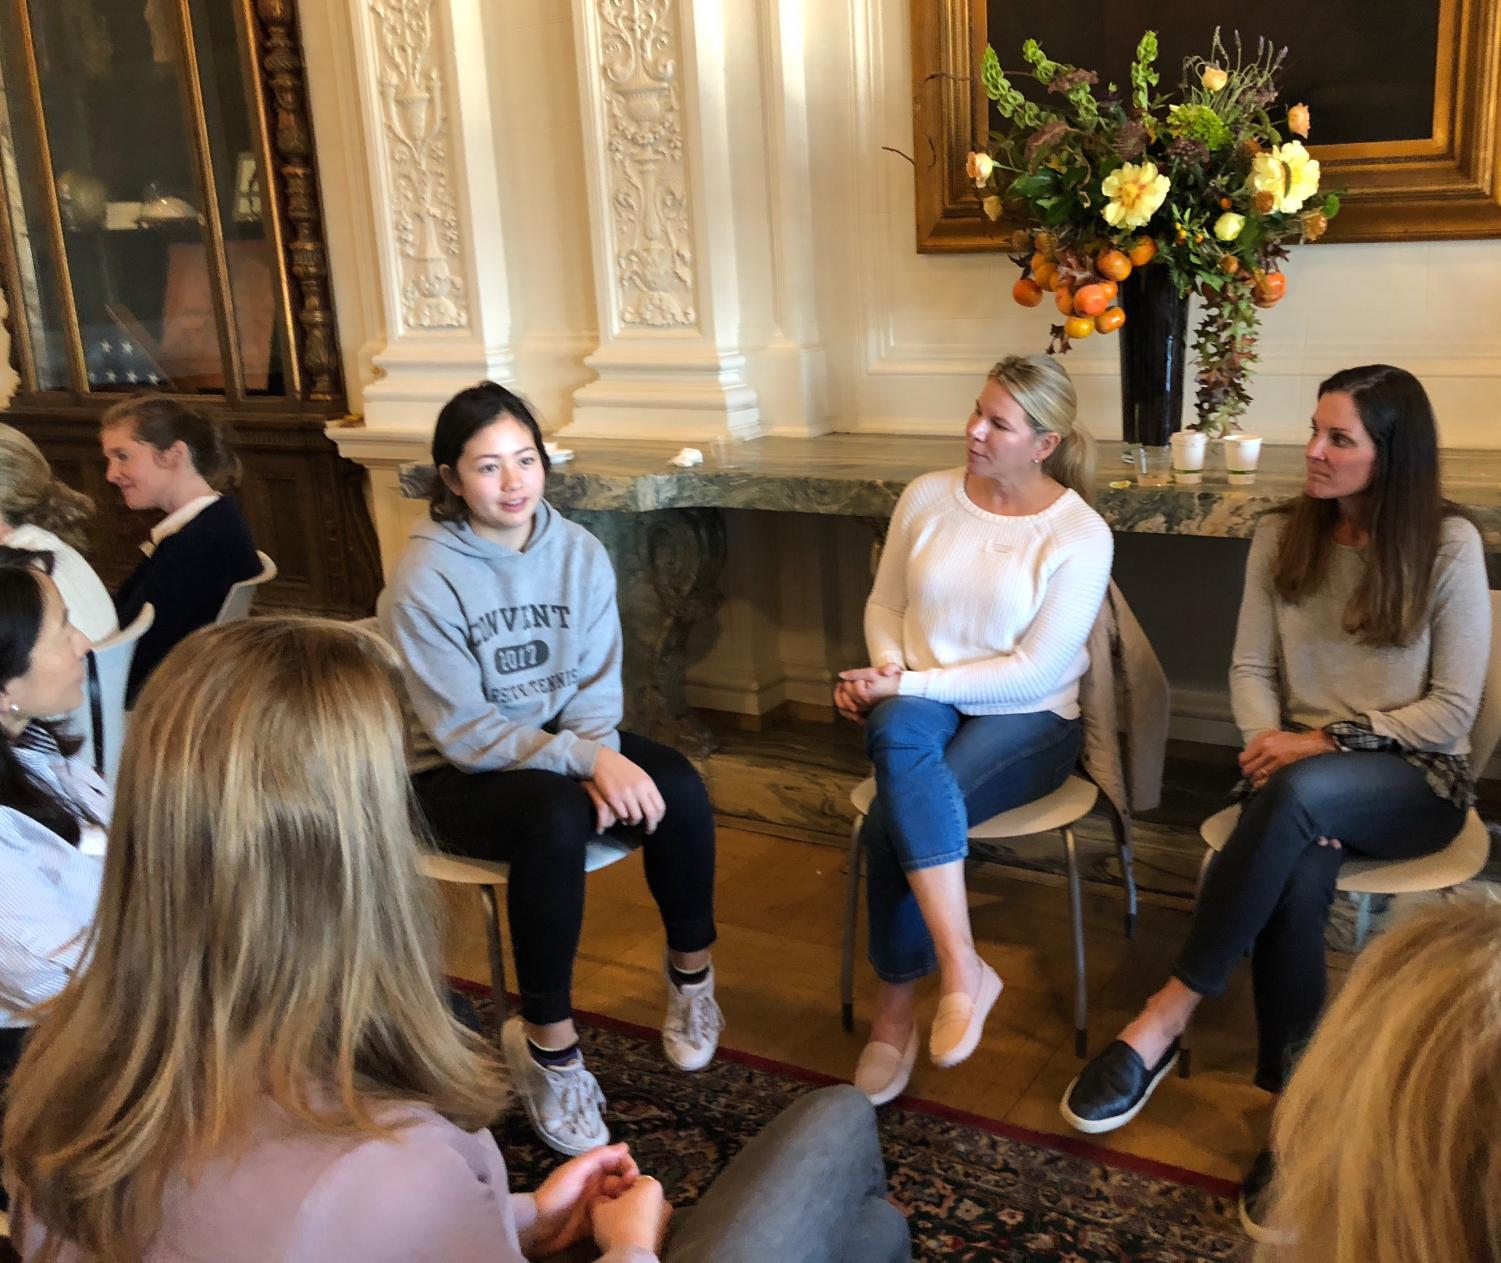 Senior Mason Cooney discusses her experience at Convent with a group of Convent & Stuart Hall parents. The event focused on the Goals and Criteria of Sacred Heart education and spiritual engagement.